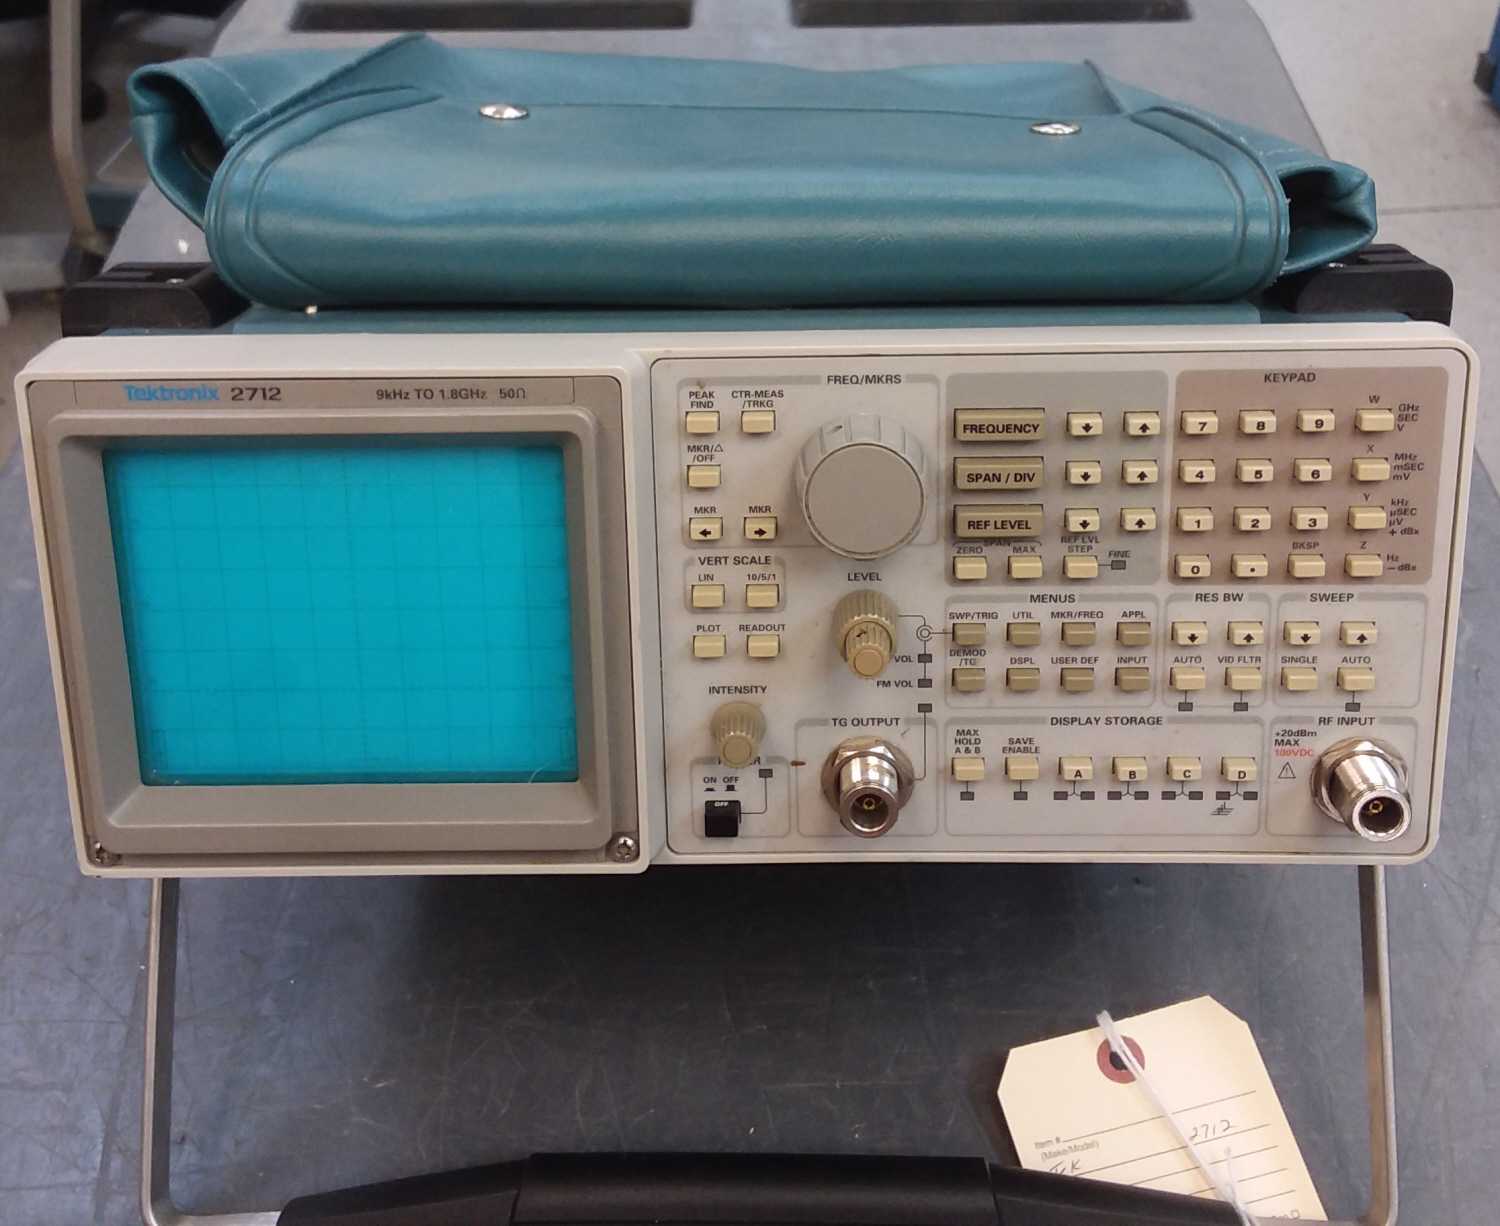 Tektronix 2712 just arrived